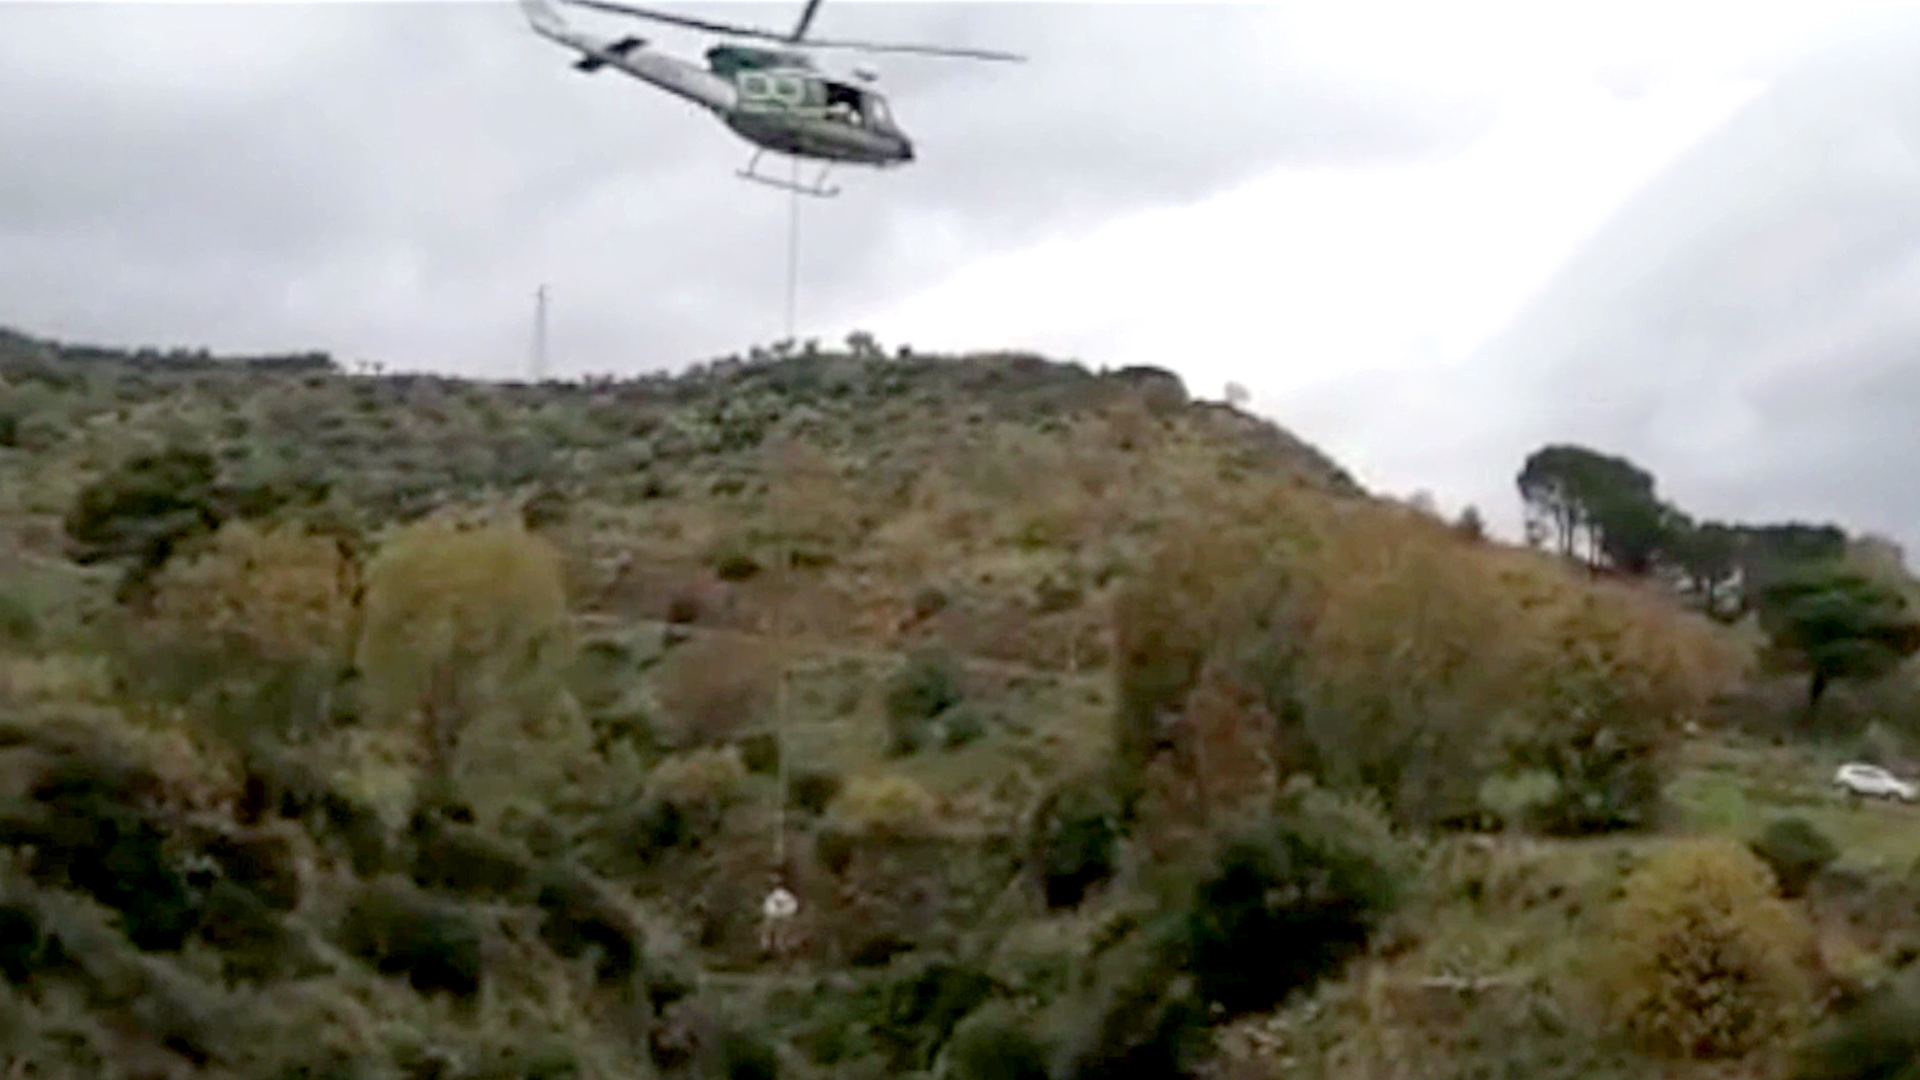 VIDEO: Tusk Force: Firefighters Rescue Horse From 120ft Ravine After It Fled From Wild Boars